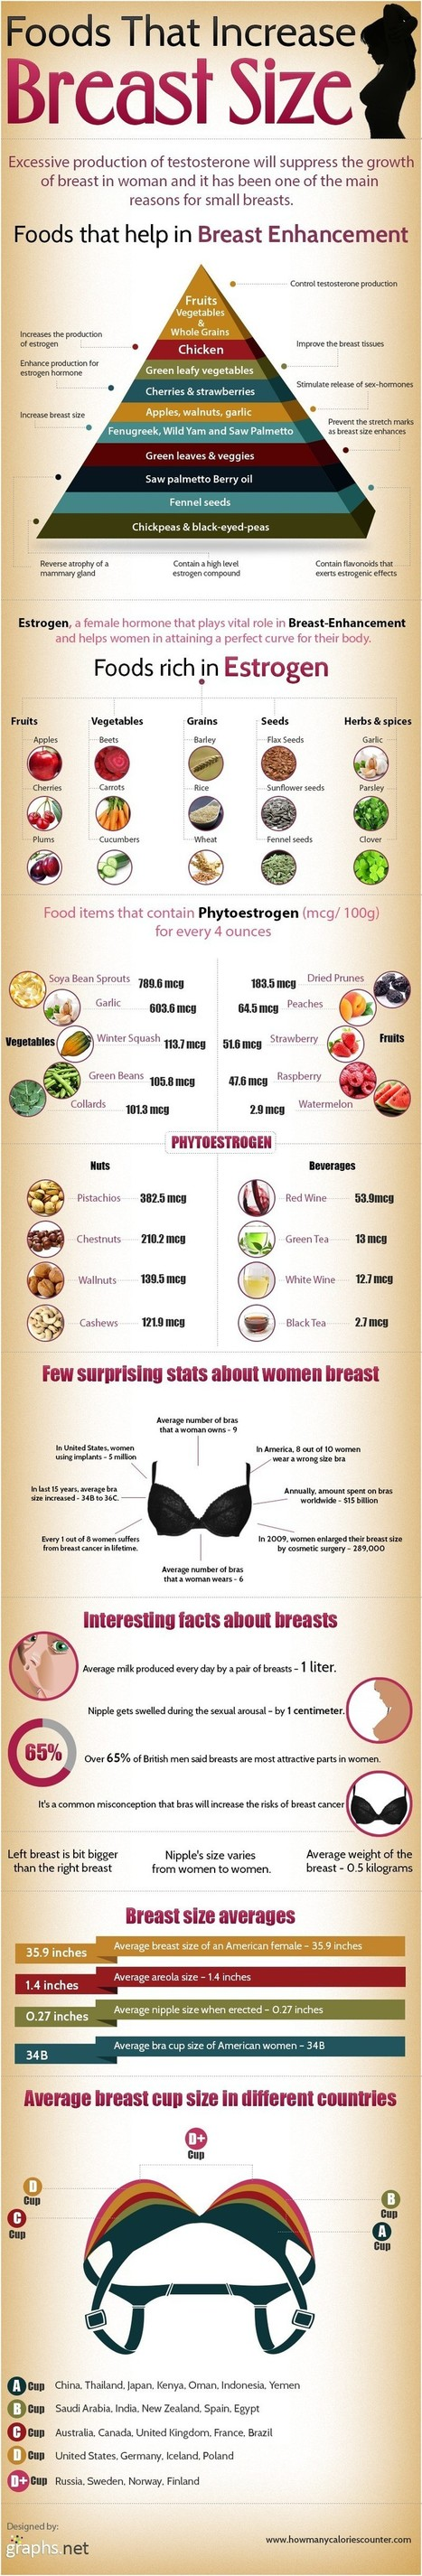 How To Increase Breast Size in a Natural Way? | All Infographics | The Best Infographics | Scoop.it